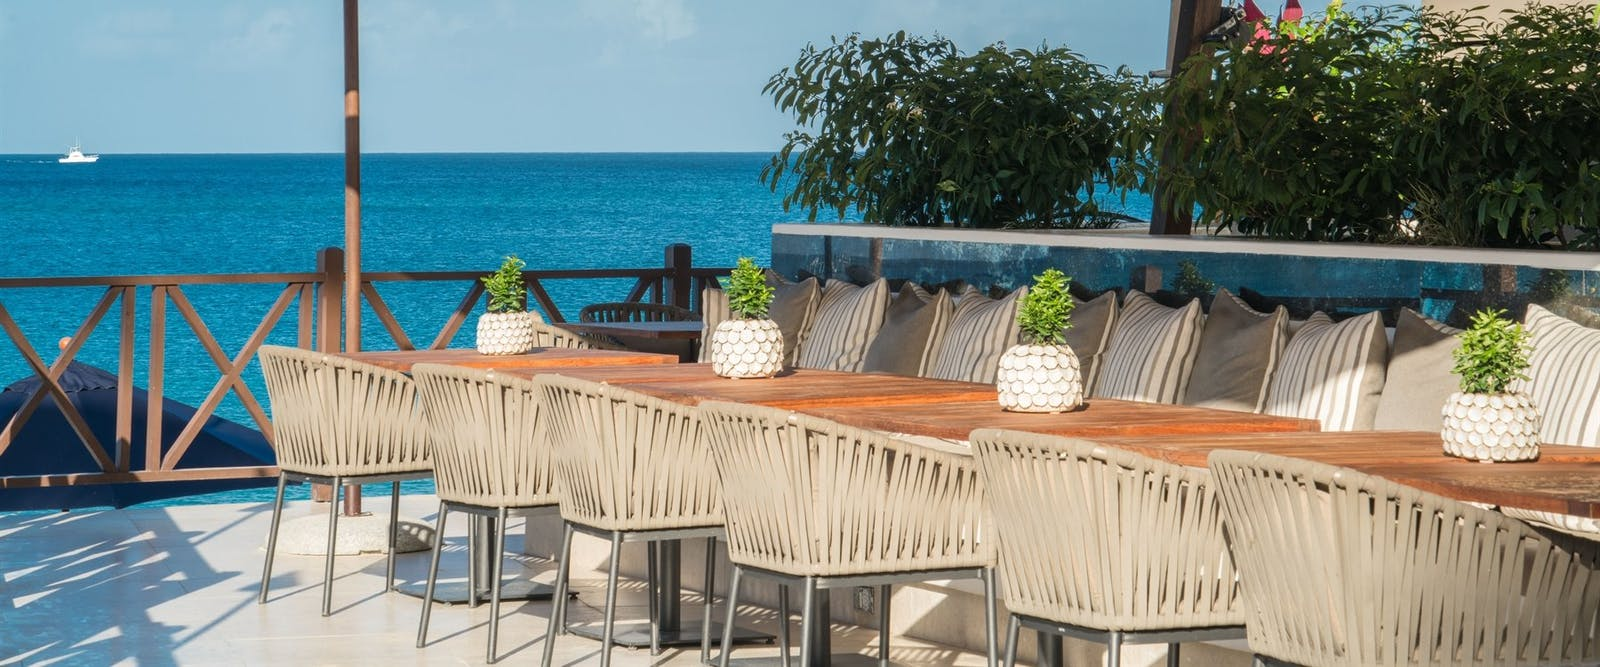 Harold's Bar at The Sandpiper, Barbados